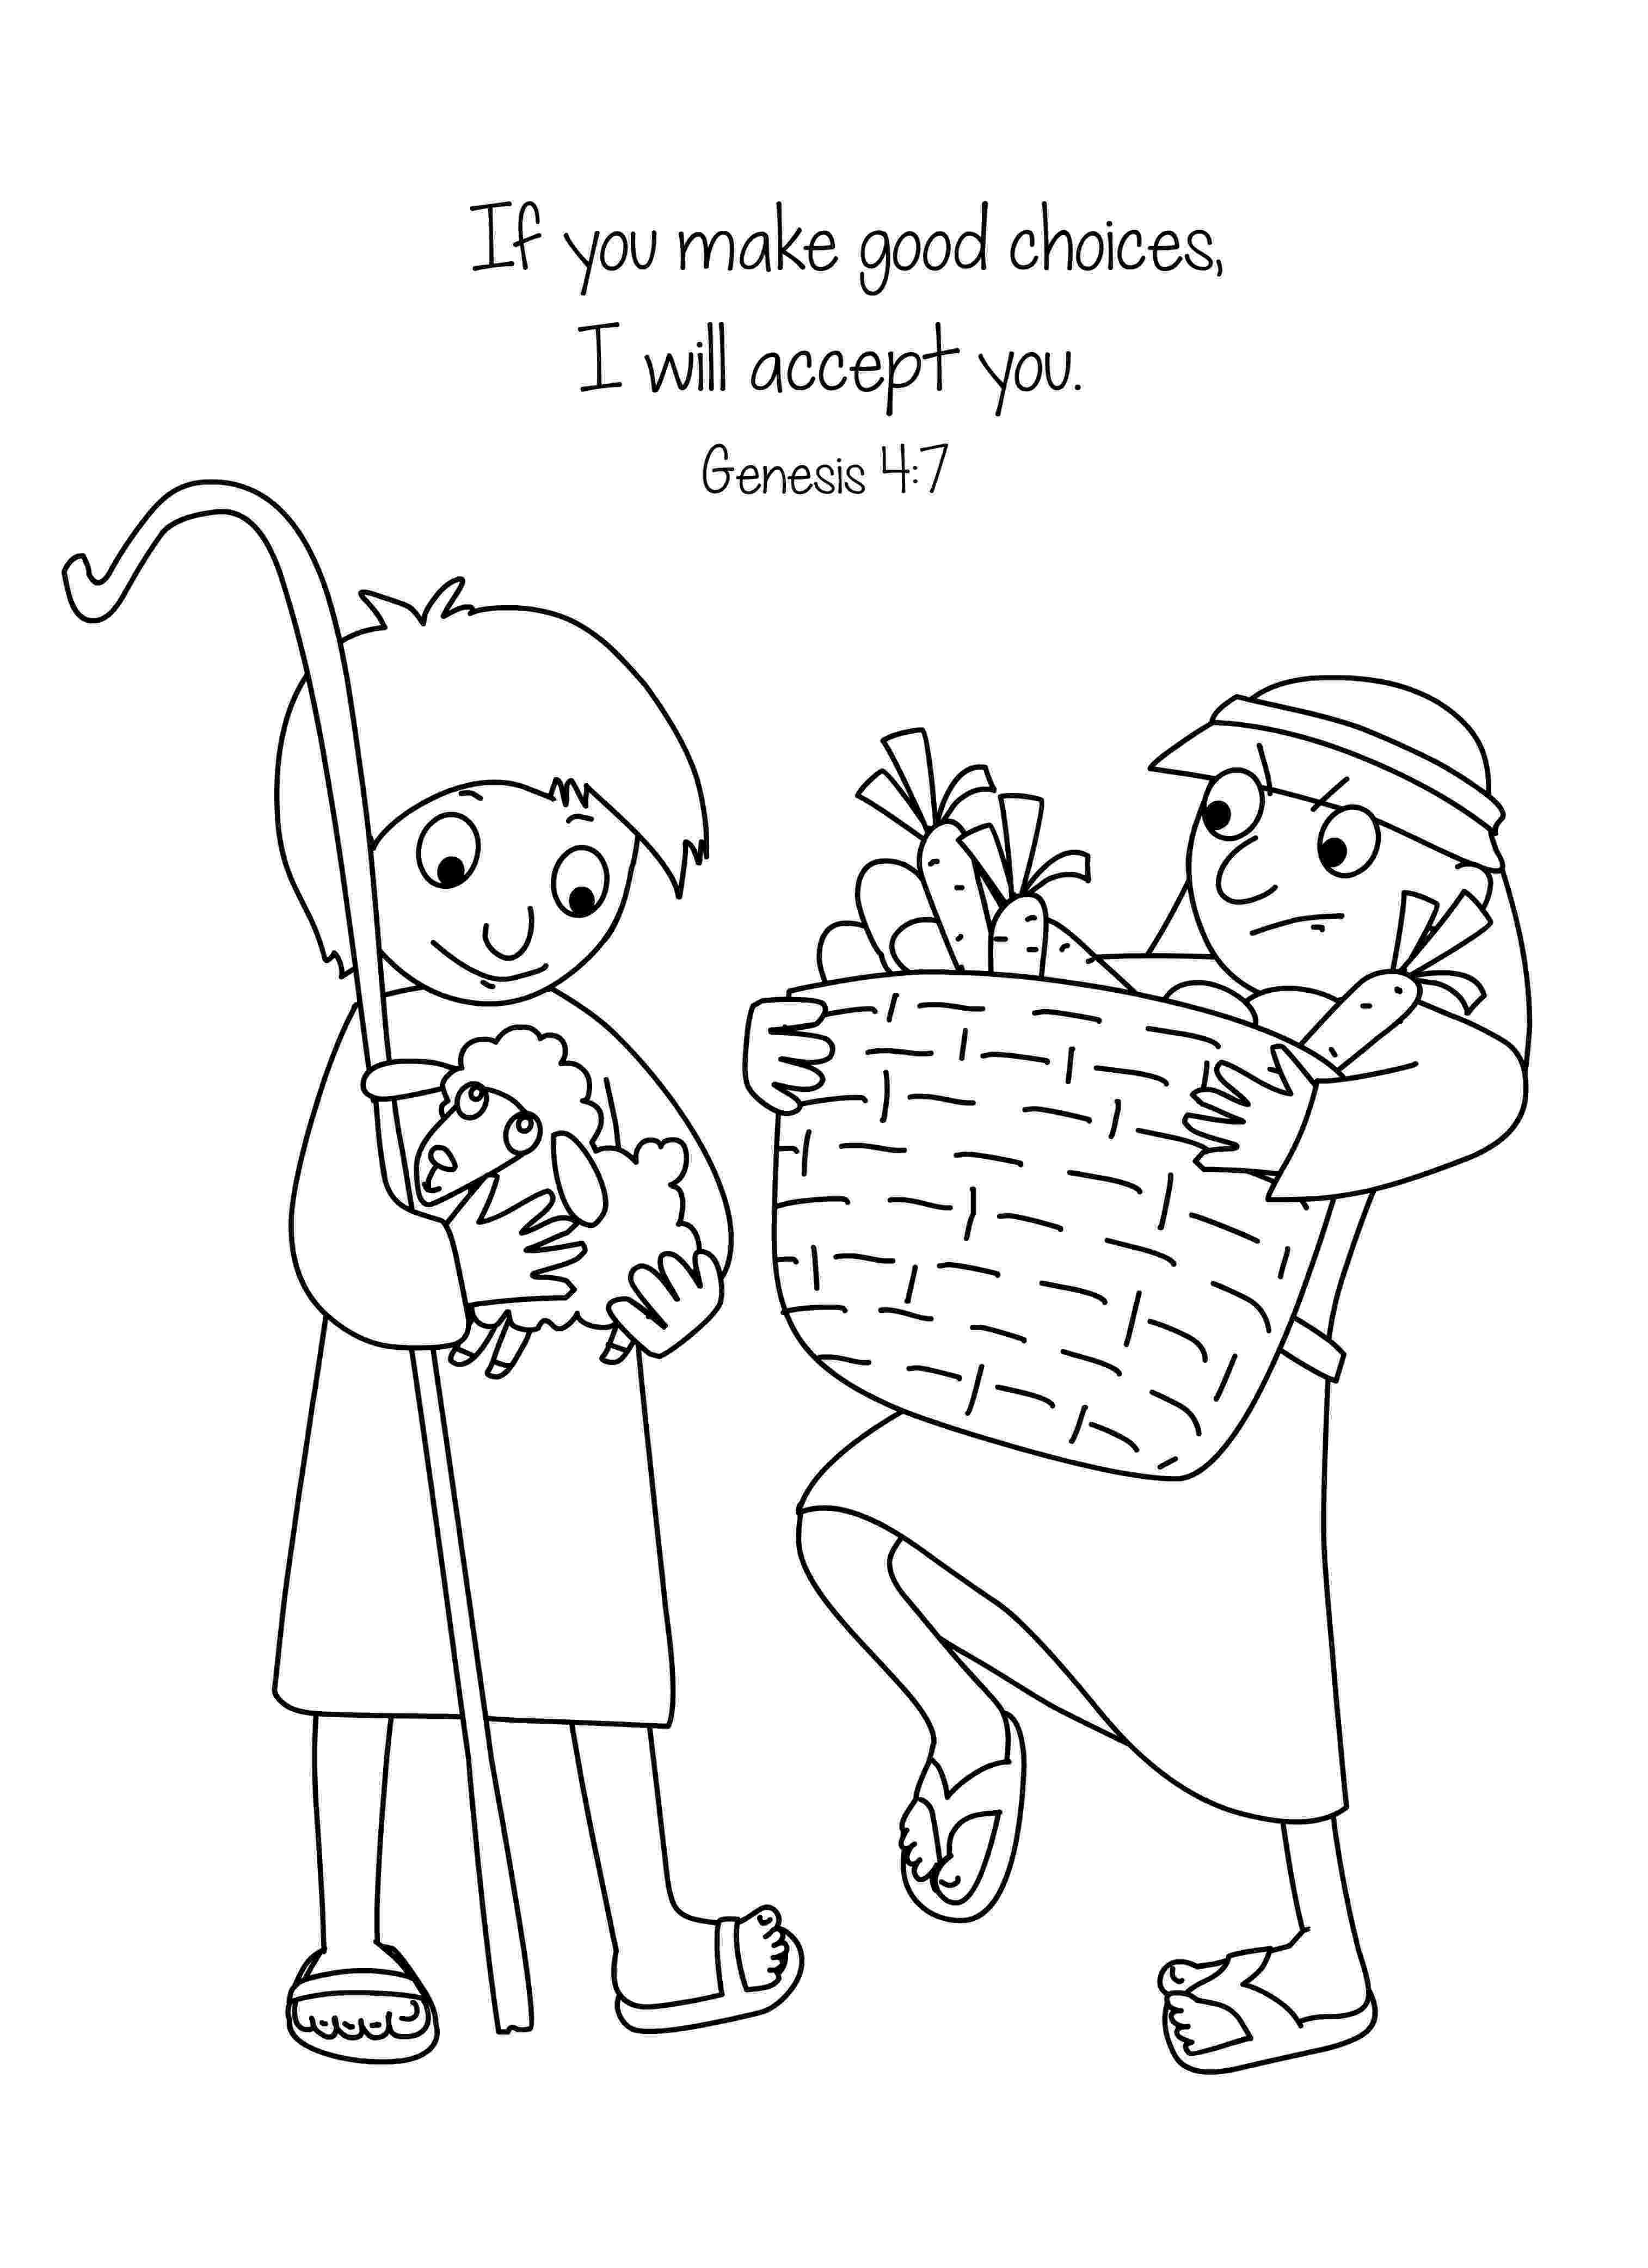 cain and abel coloring pages cain and abel coloring page sunday school ideas bible coloring pages and cain abel